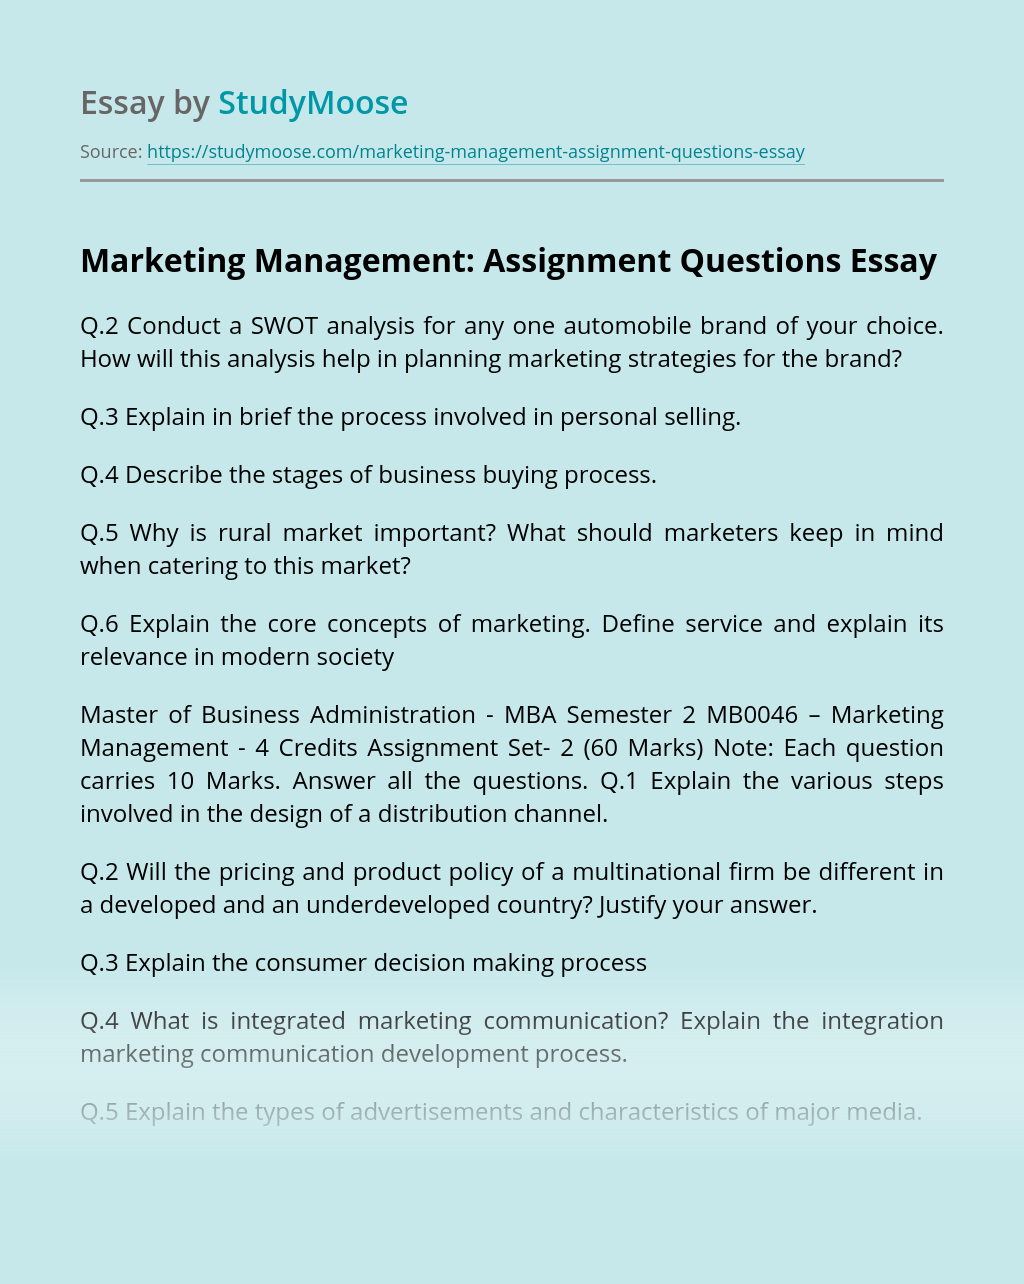 Marketing Management: Assignment Questions